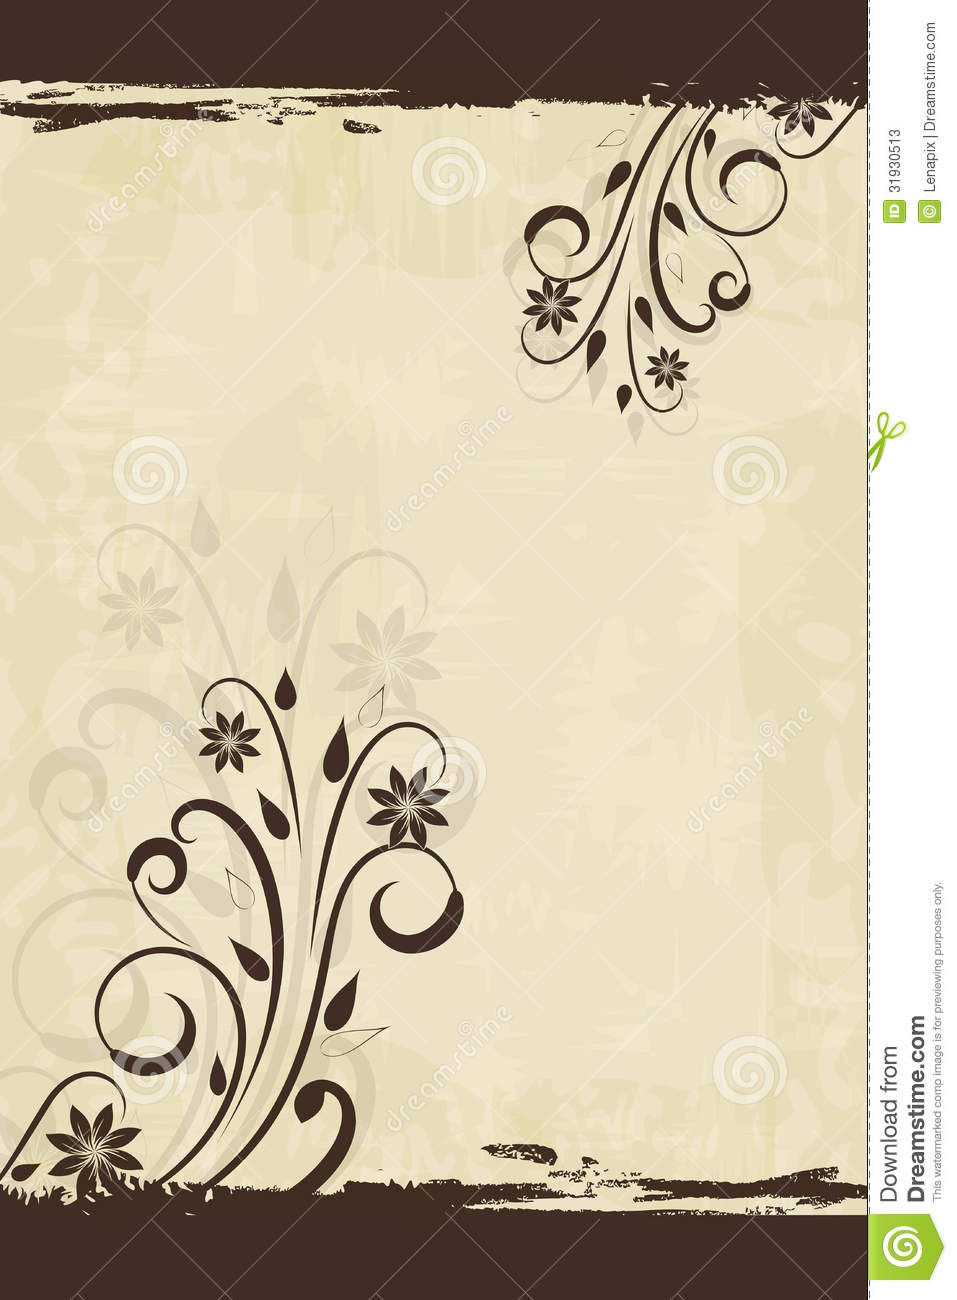 Book Cover Background Jobs : Floral vintage background stock vector illustration of